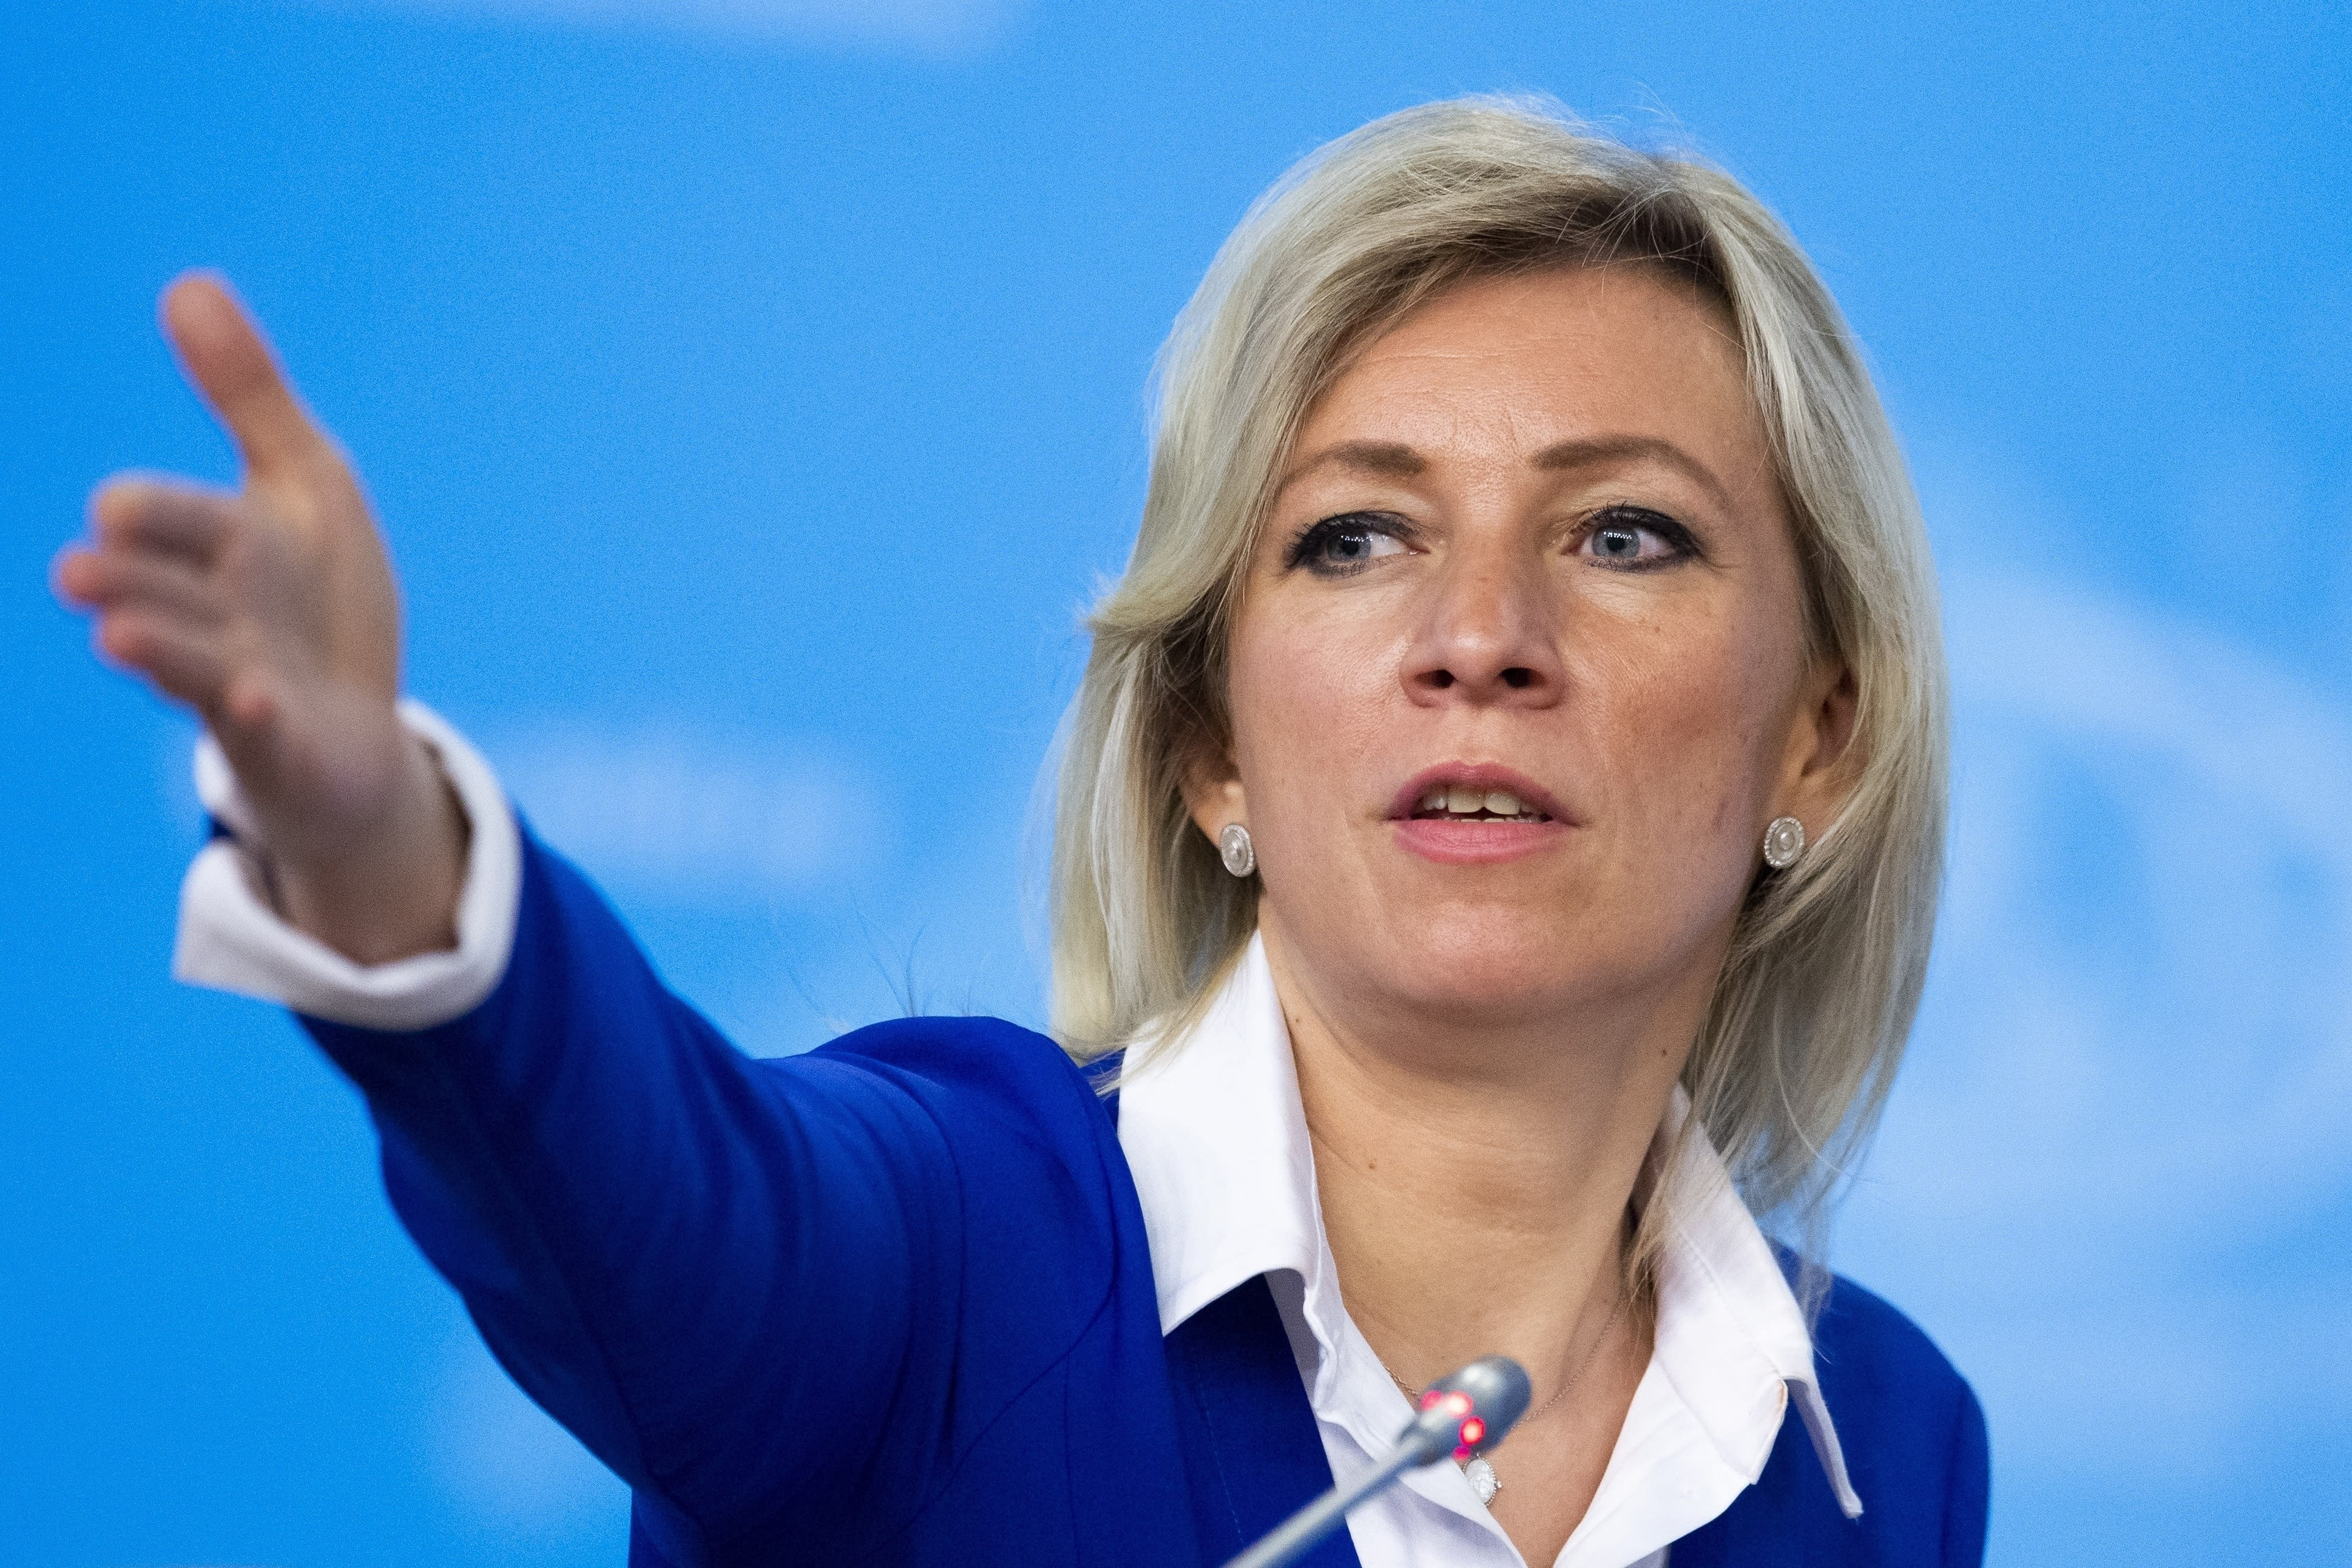 """FILE - In this Friday, Jan. 17, 2020 file photo, Russian Foreign Ministry spokesperson Maria Zakharova gestures as she attends Russian Foreign Minister Sergey Lavrov's annual roundup news conference summing up his ministry's work in 2019, in Moscow, Russia. Russia's Foreign Ministry has accused the Financial Times and the New York Times of spreading """"disinformation"""" after the two newspapers alleged that Russia's coronavirus death toll could much higher than officials report. The Ministry's spokeswoman Maria Zakharova said Wednesday May 13, 2020, that letters demanding a retraction would be passed on to editors in chief of the newspapers on Thursday. (AP Photo/Alexander Zemlianichenko, File)"""